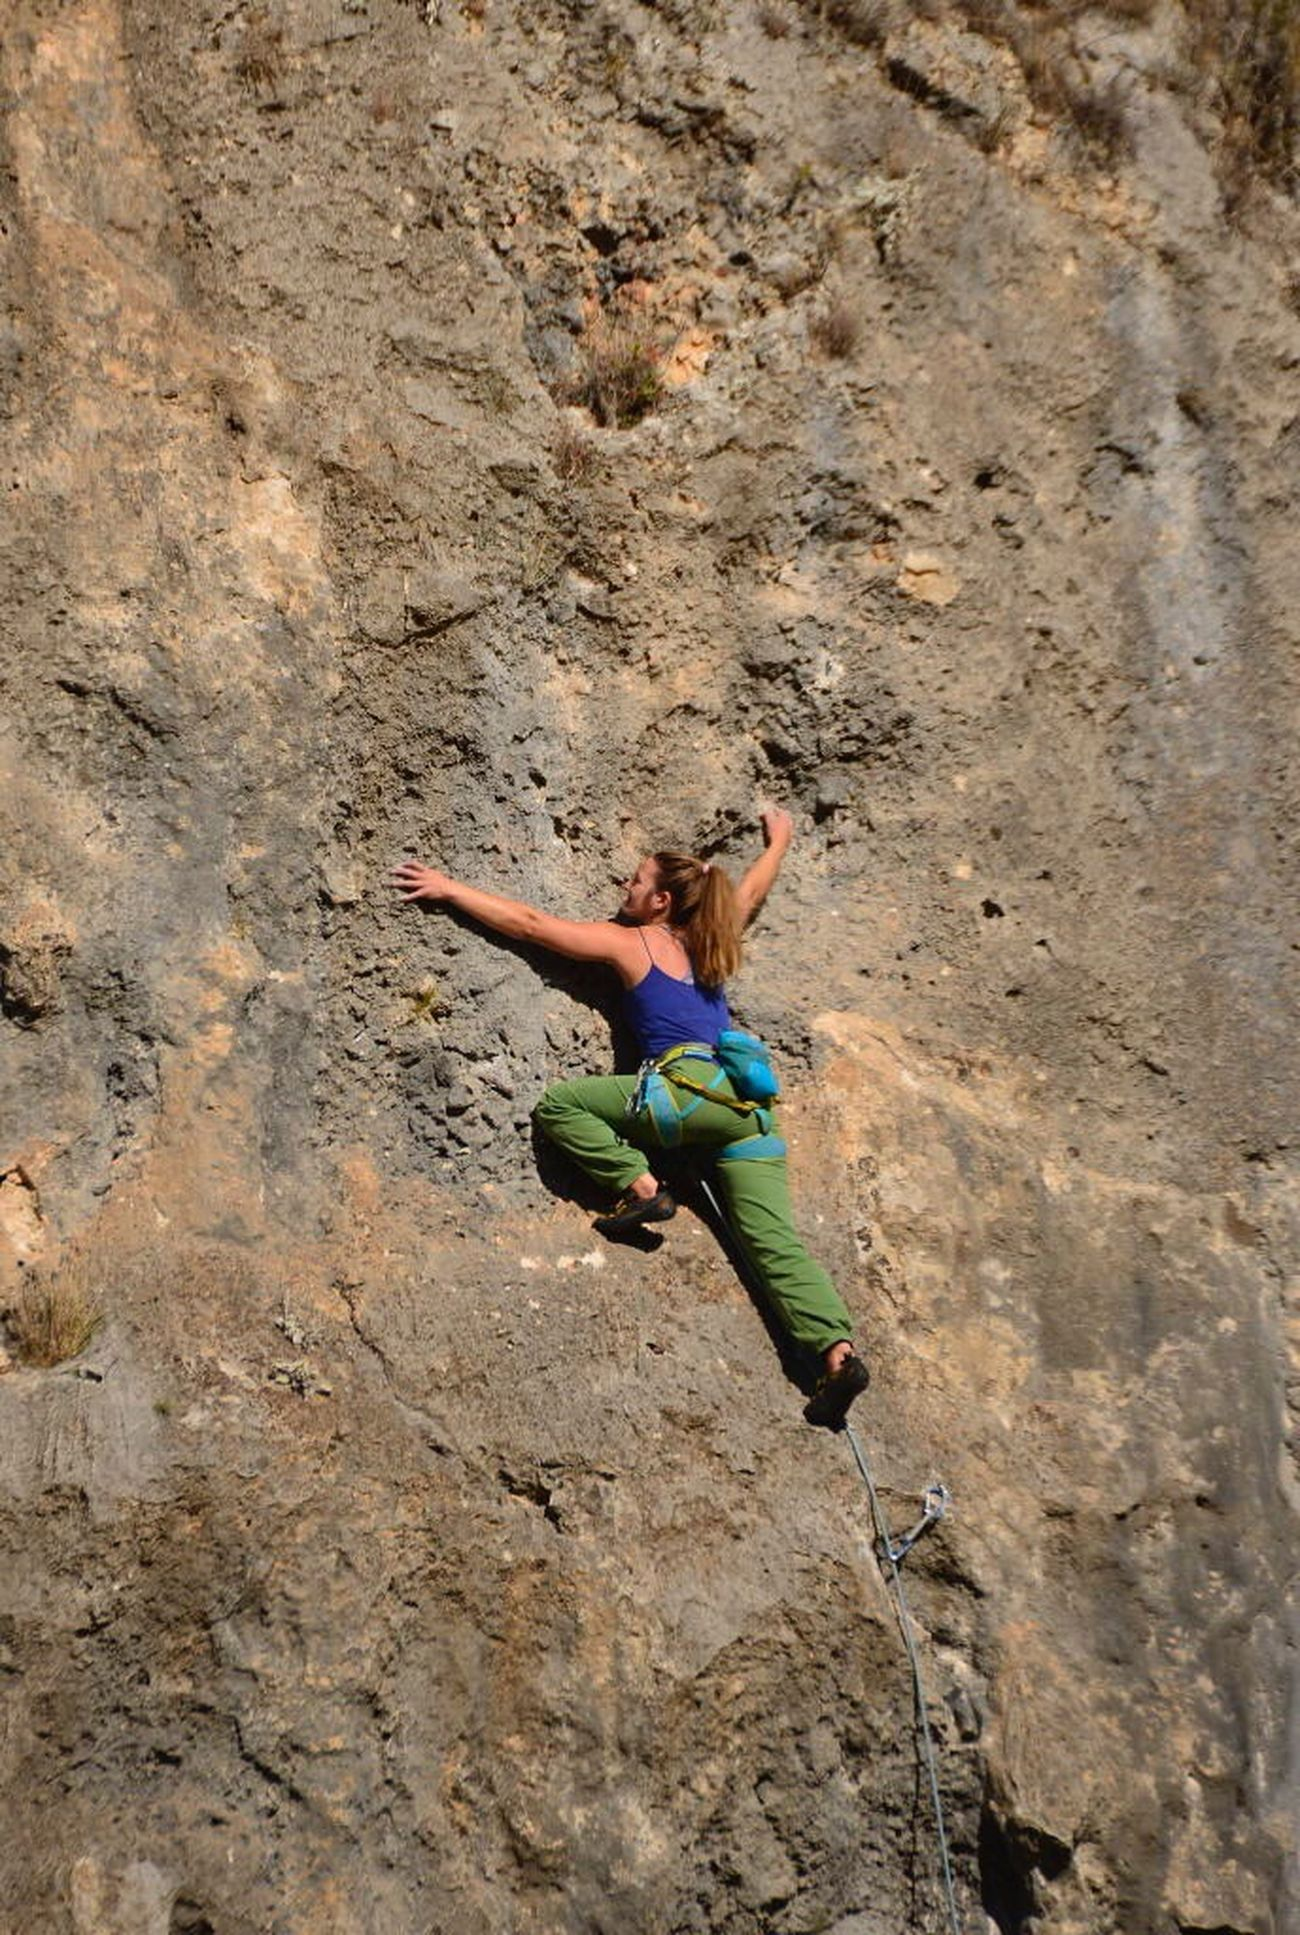 The Great Outdoors - 2017 EyeEm Awards Rock Climbing Climbing Adults Only RISK Full Length Adult Day Rock - Object One Person One Woman Only Adventure Only Women Rock Face Outdoors Young Adult People Sport Nature Extreme Sports Flexibility Geyikbayırı Antalya Turkey Tırmanış